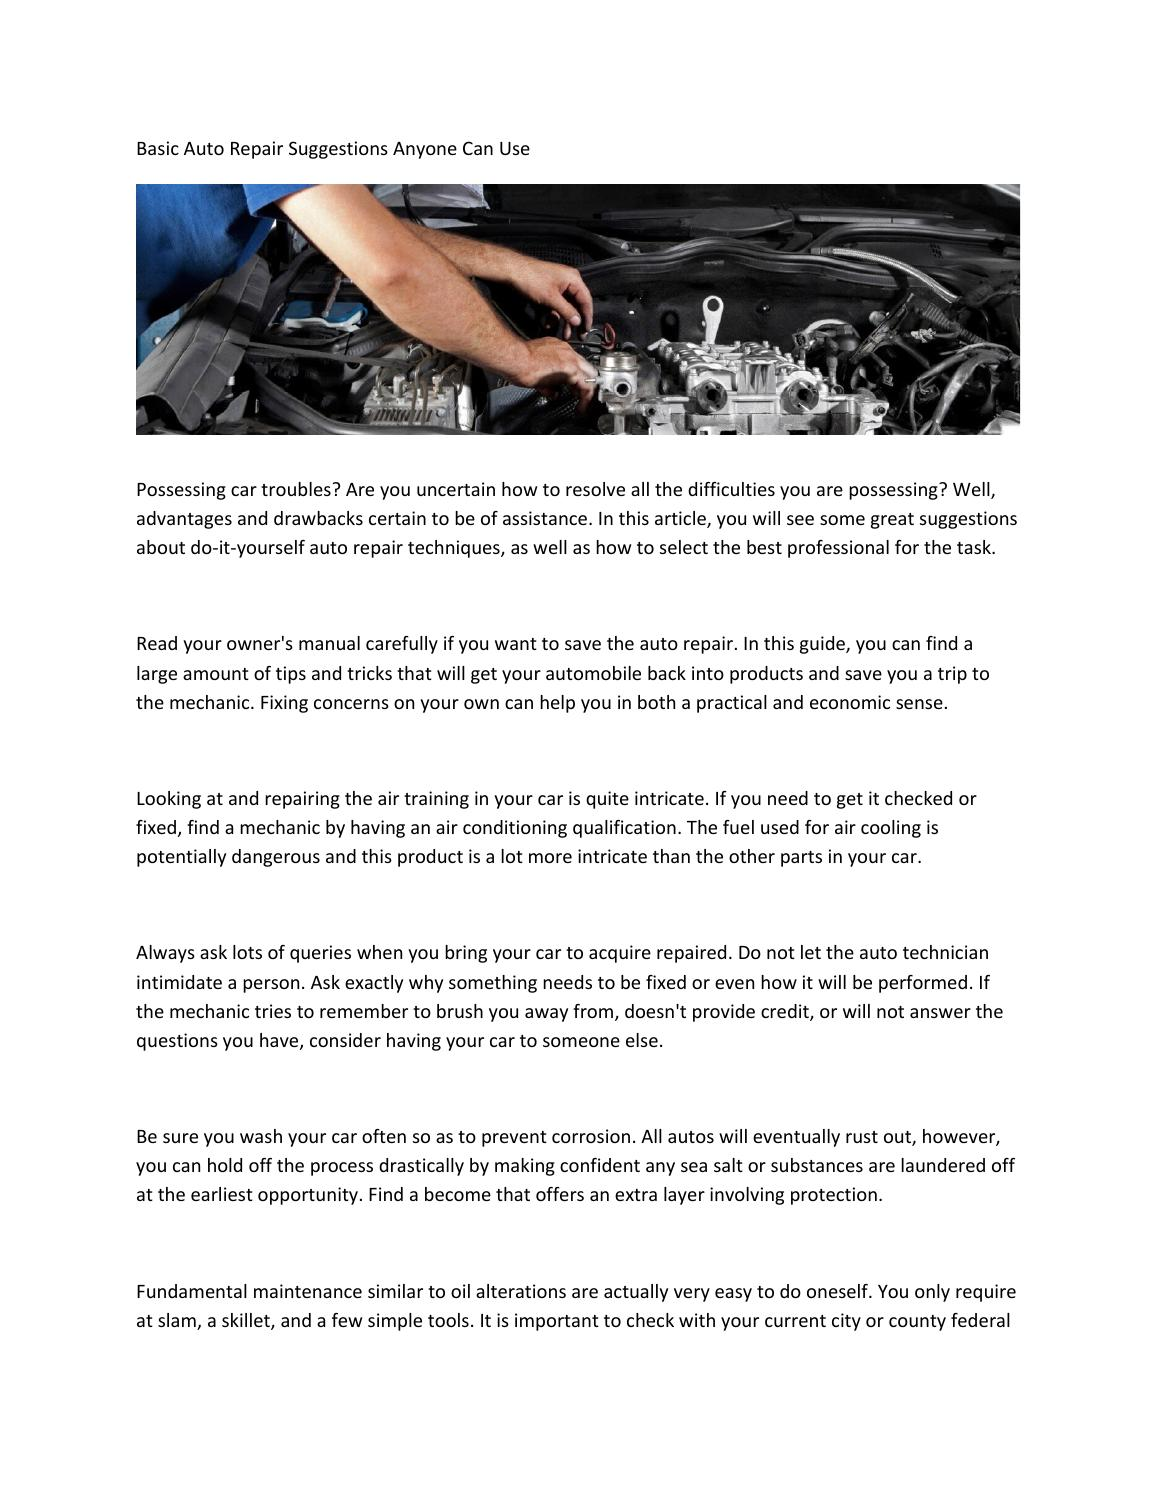 Basic Auto Repair Suggestions Anyone Can Use By Issuu Learn More At Do It Yourself Help Com